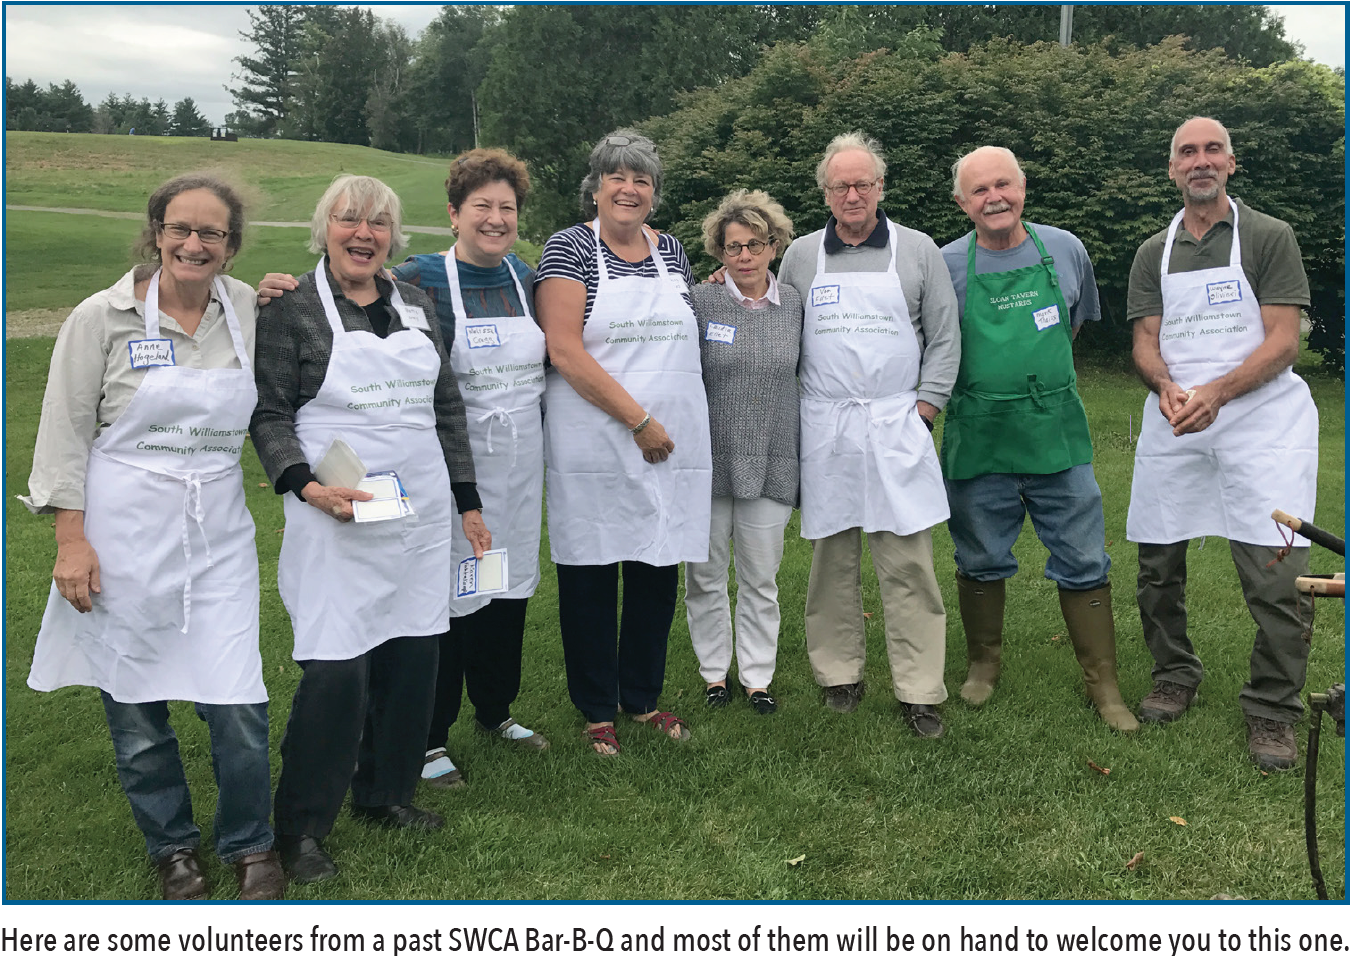 Here are some volunteers from a past SWCA Bar-B-Q and most of them will be on hand to welcome you to this one.